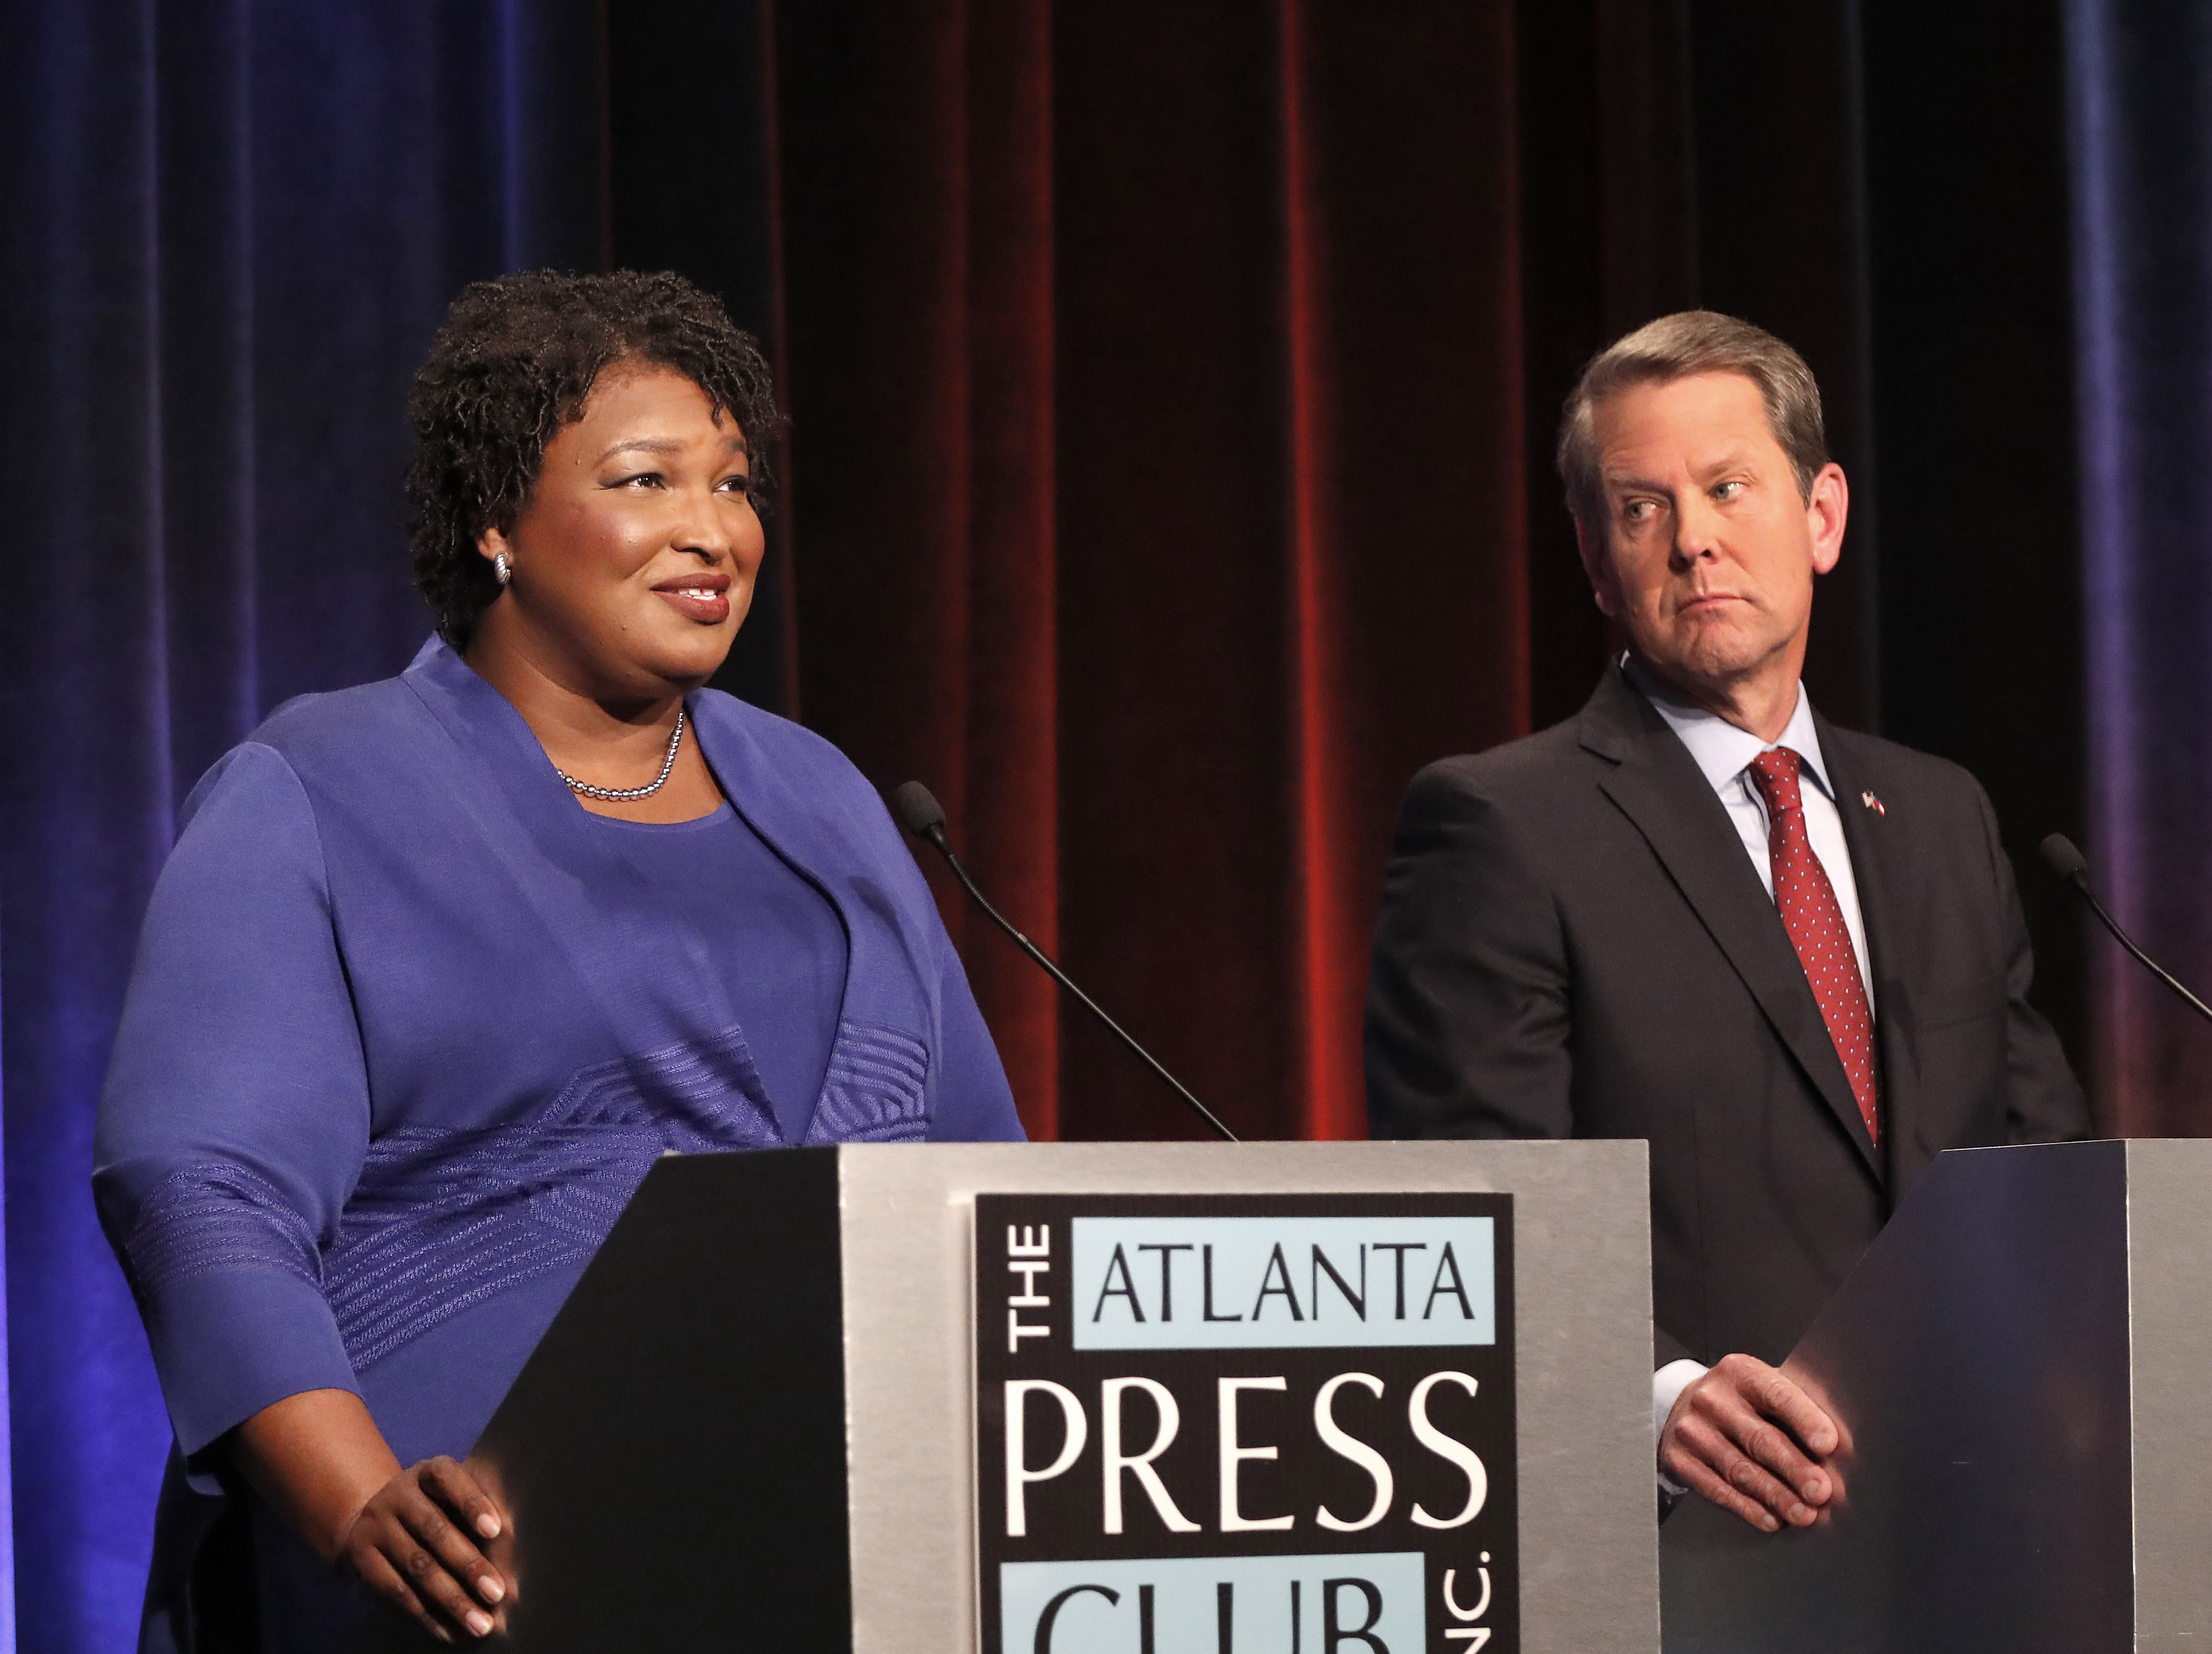 Democratic gubernatorial candidate for Georgia Stacey Abrams, left, speaks as her Republican opponent Secretary of State Brian Kemp looks on during a debate Tuesday, Oct. 23, 2018, in Atlanta. (AP Photo/John Bazemore, Pool)